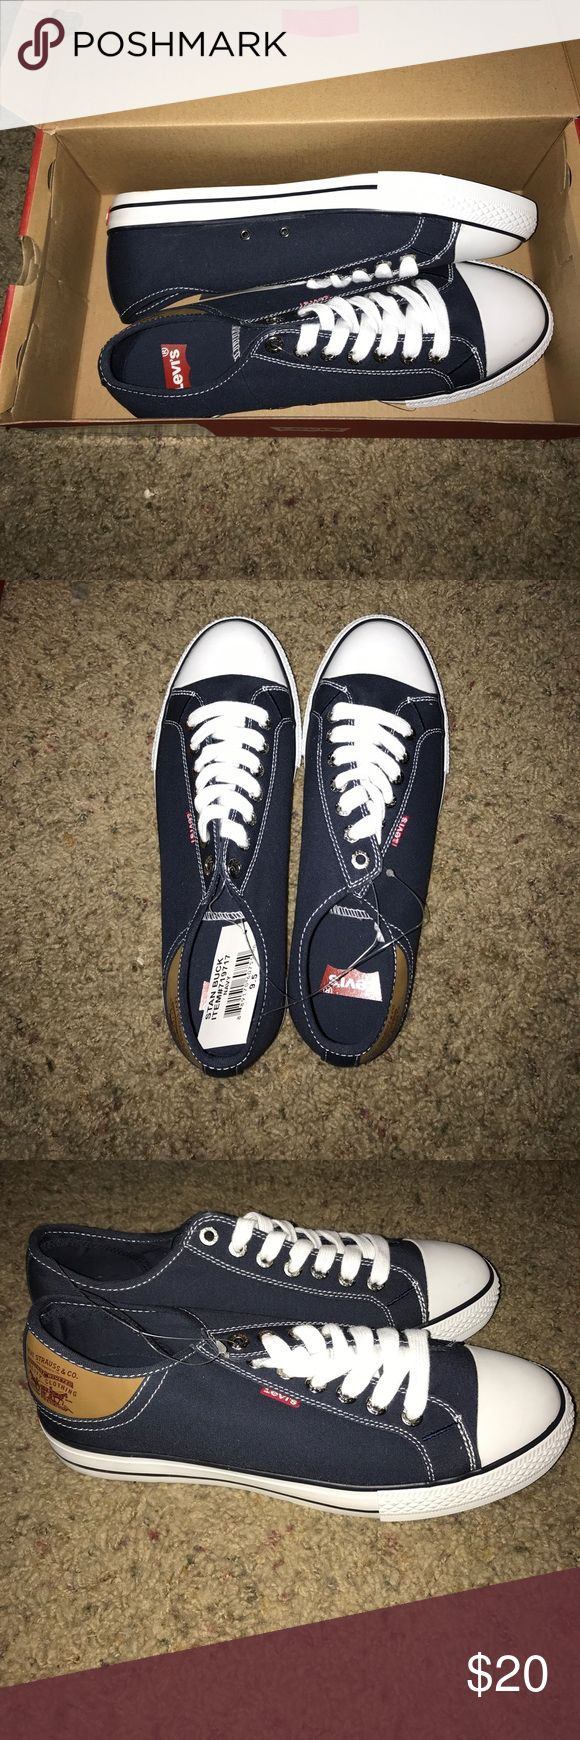 Navy Blue Stan Buck Levi Sneakers Navy blue canvas sneaker. Brand new in box, never worn, never unlaced. Accepting reasonable offers. Levi's Shoes Sneakers